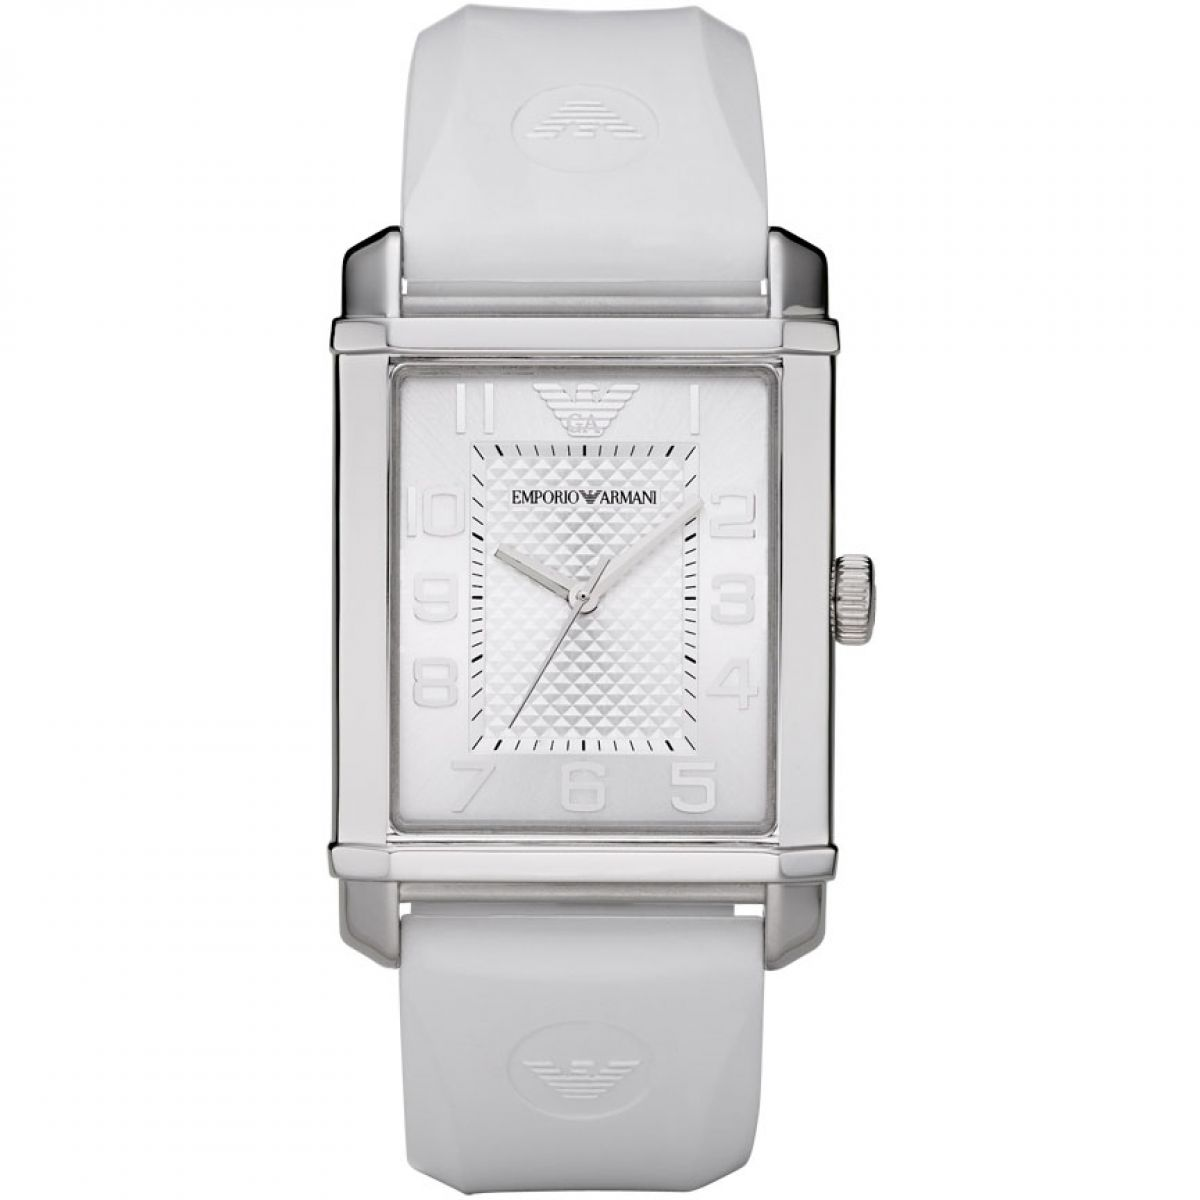 Emporio Armani Classic Stainless Steel White Dial Rubber Strap Unisex Watch